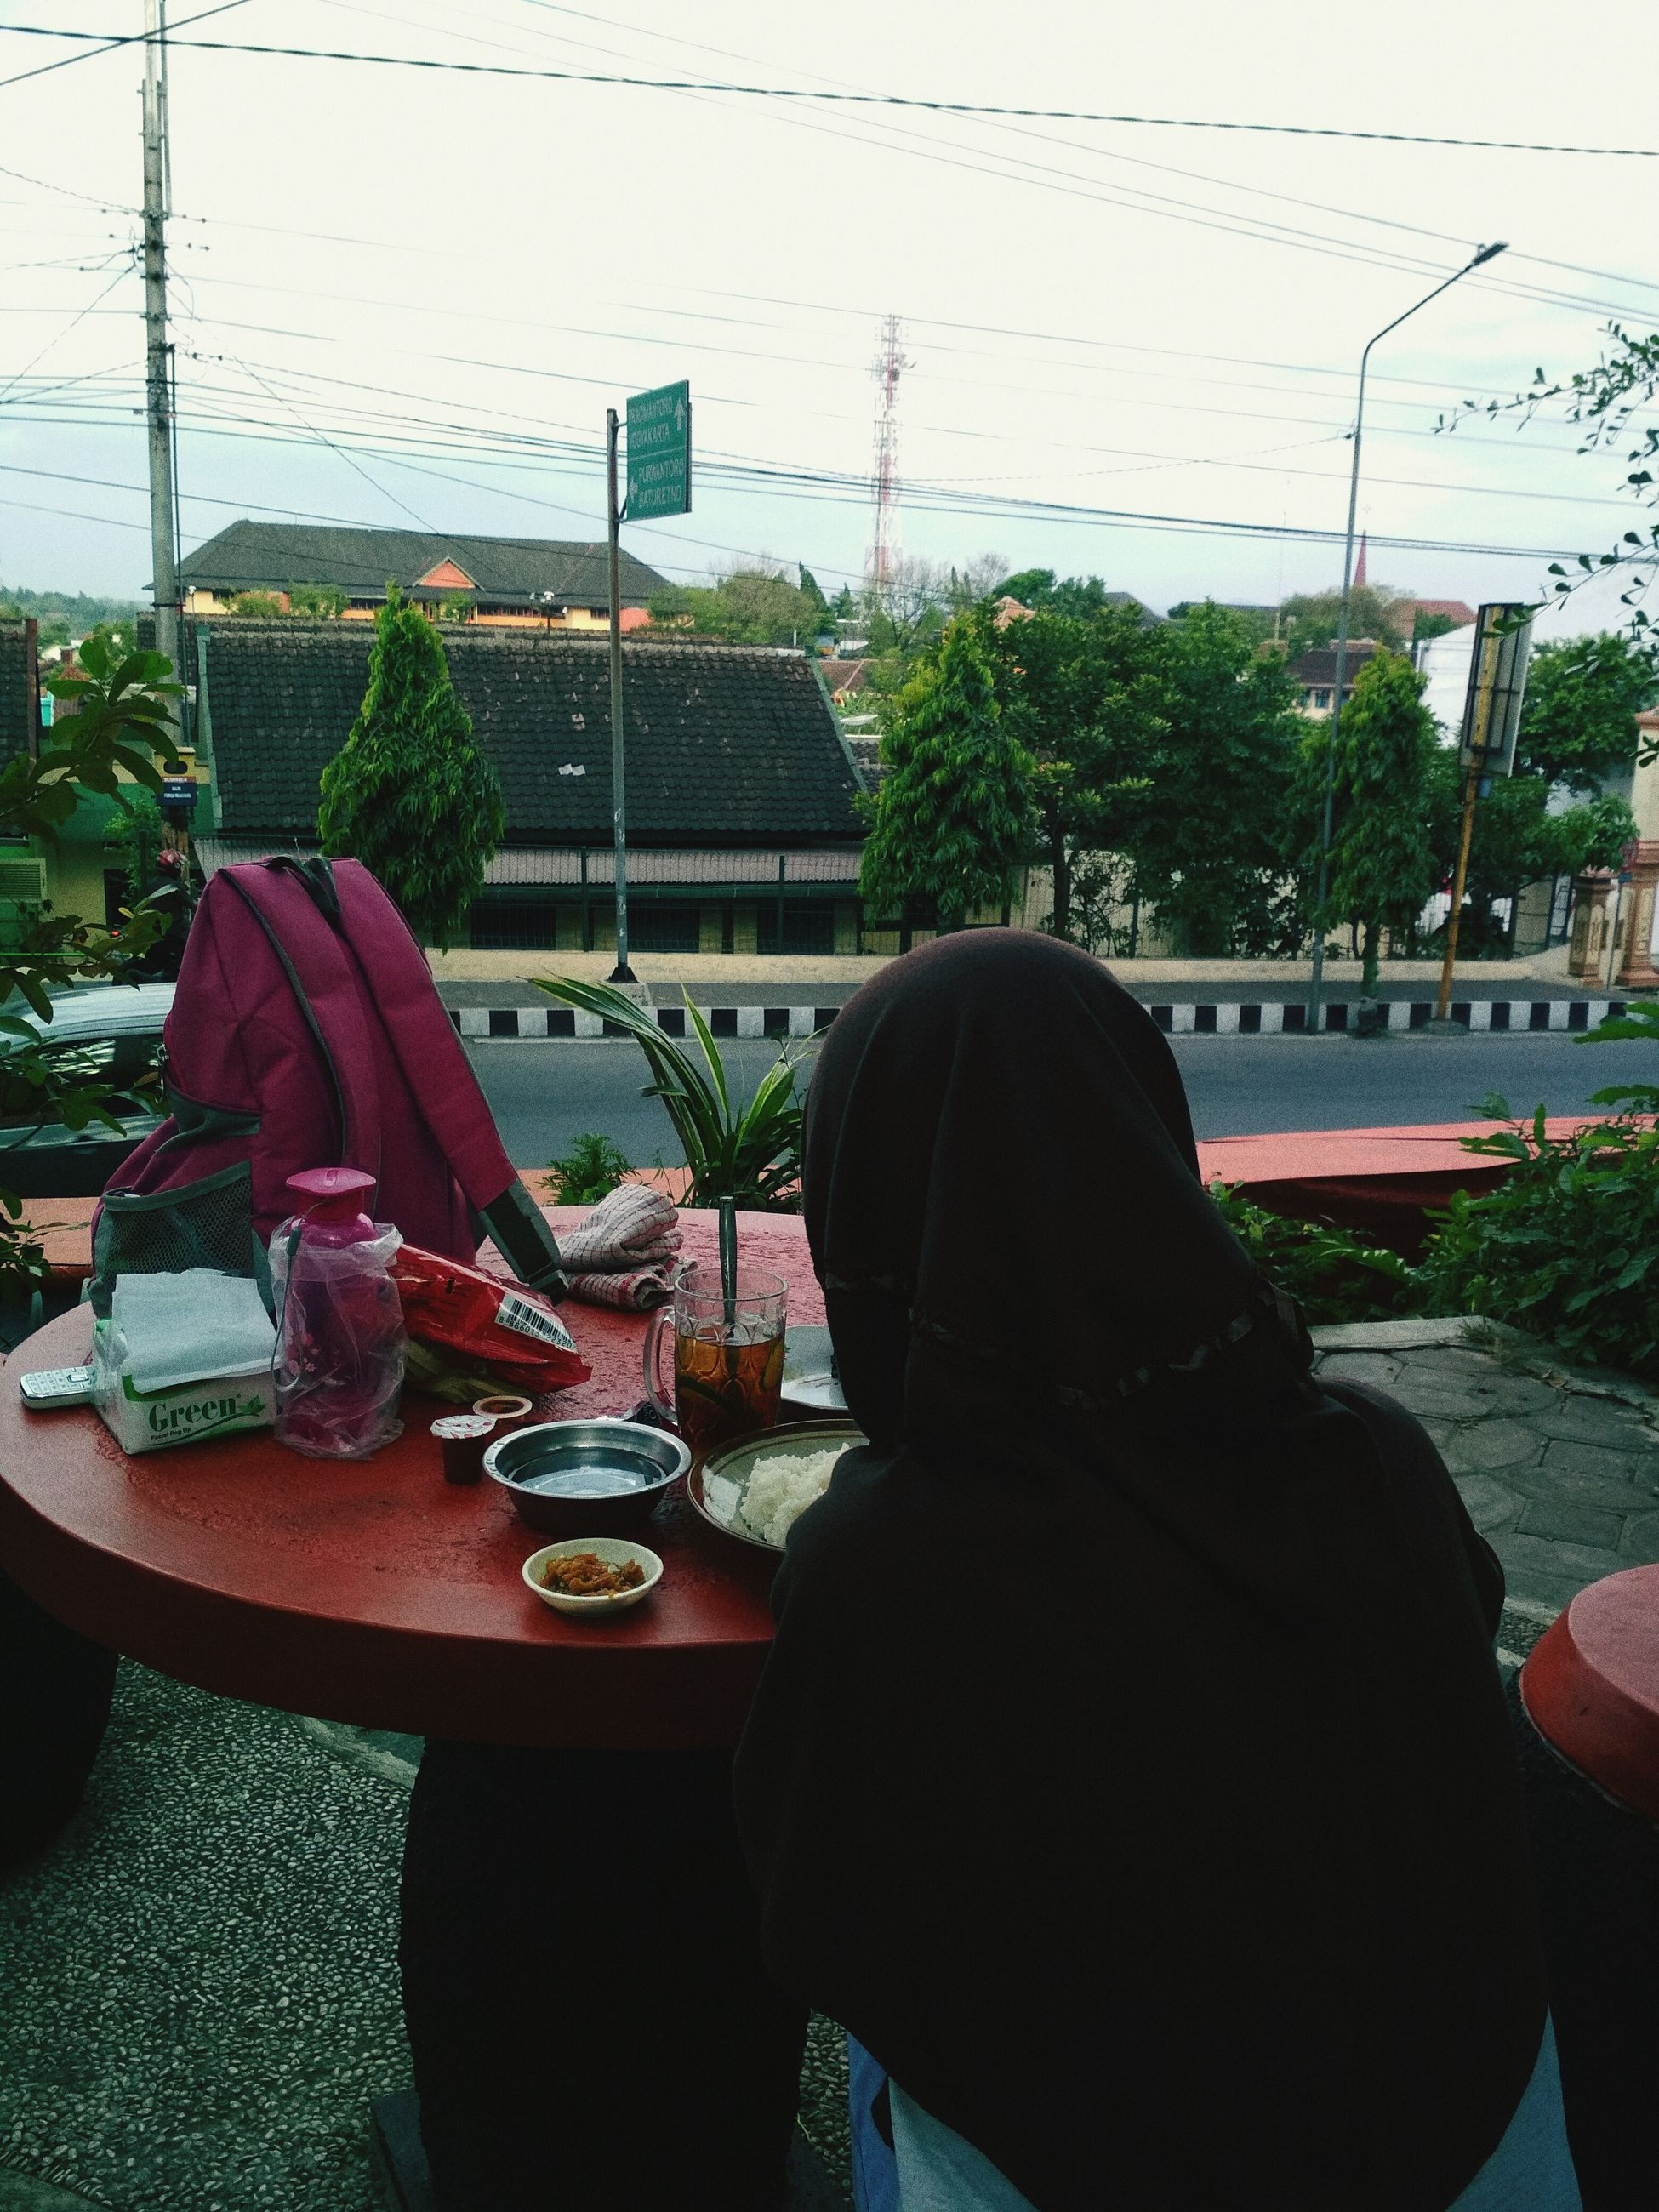 real people, women, one person, table, indoors, rear view, day, architecture, tree, sky, nature, people